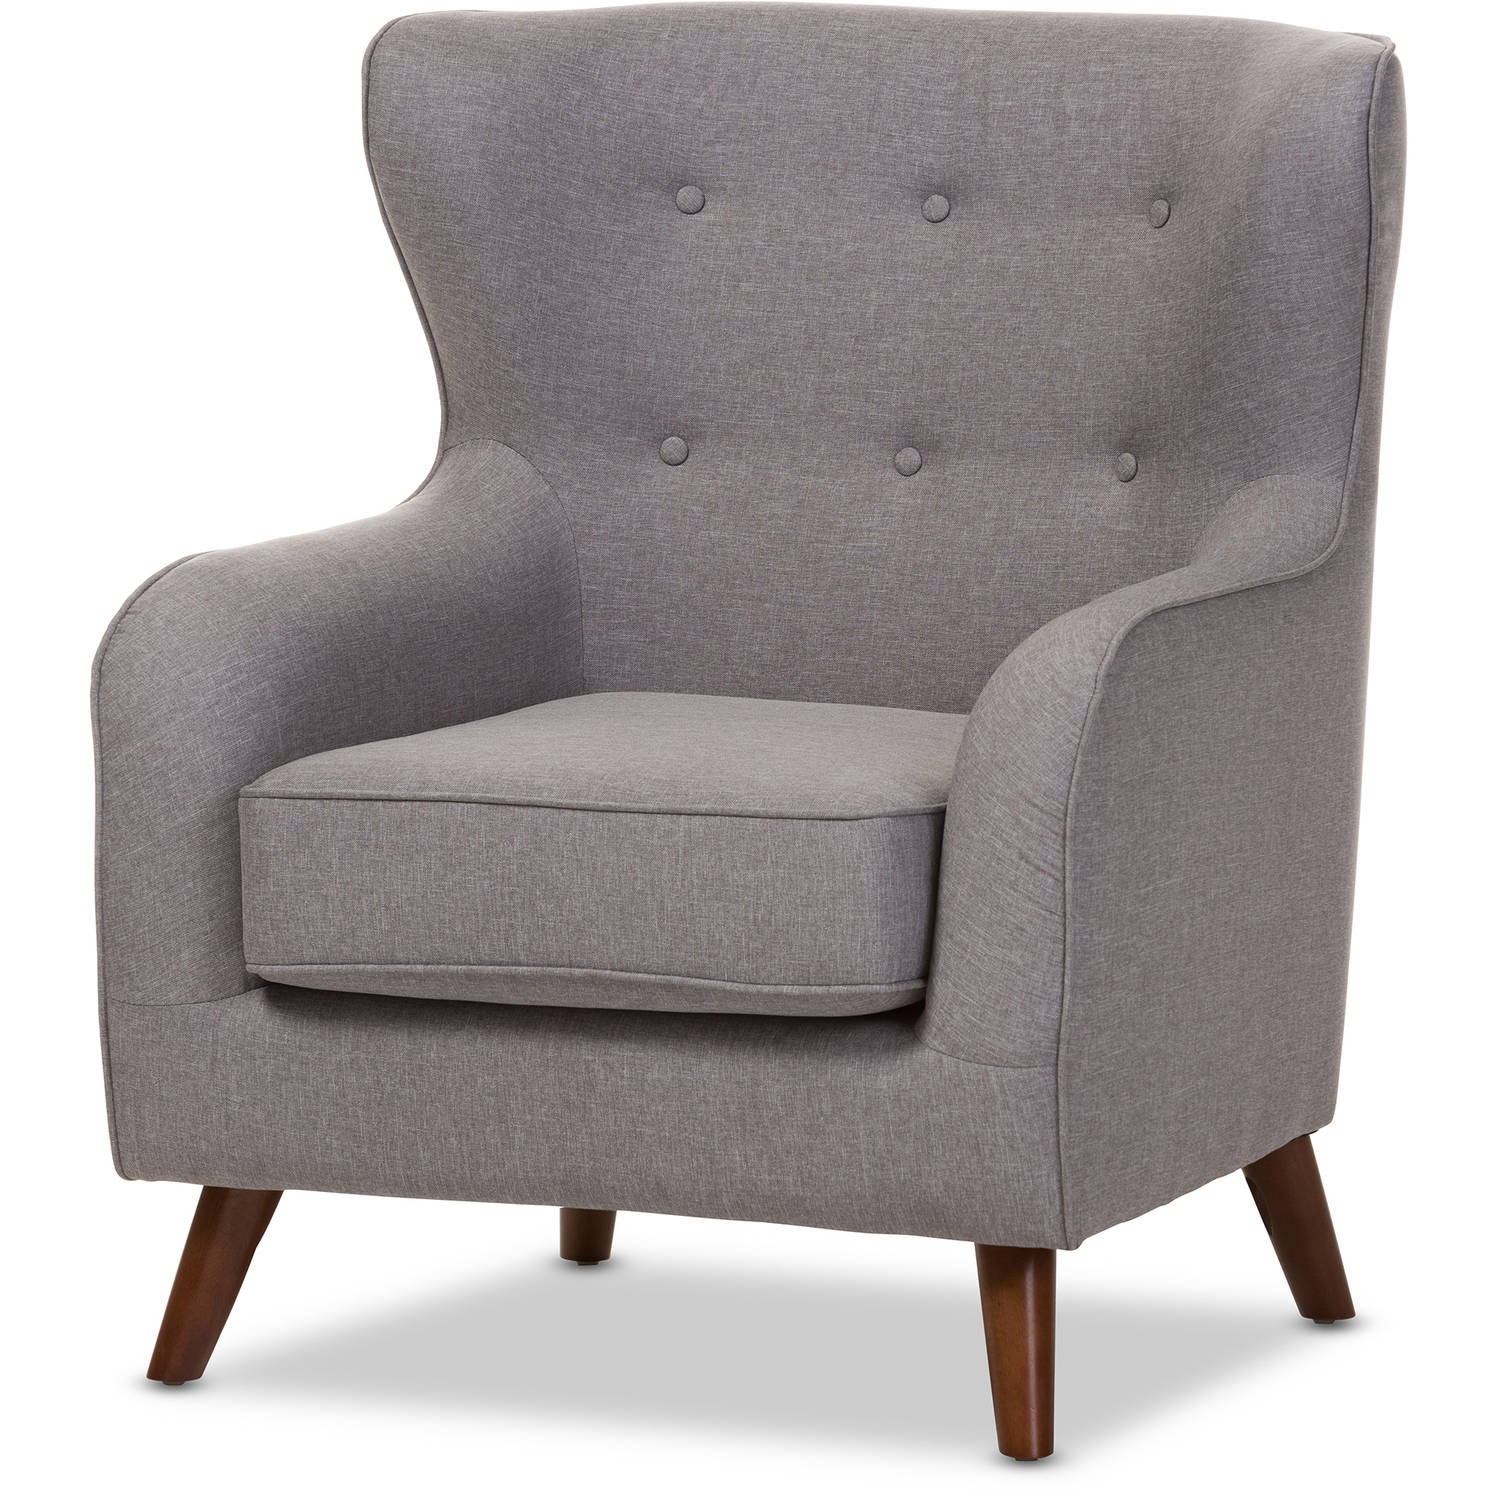 Baxton Studio Ludwig Mid-Century Modern Light Gray Fabric Upholstered Walnut Wood Button-Tufted Armchair by